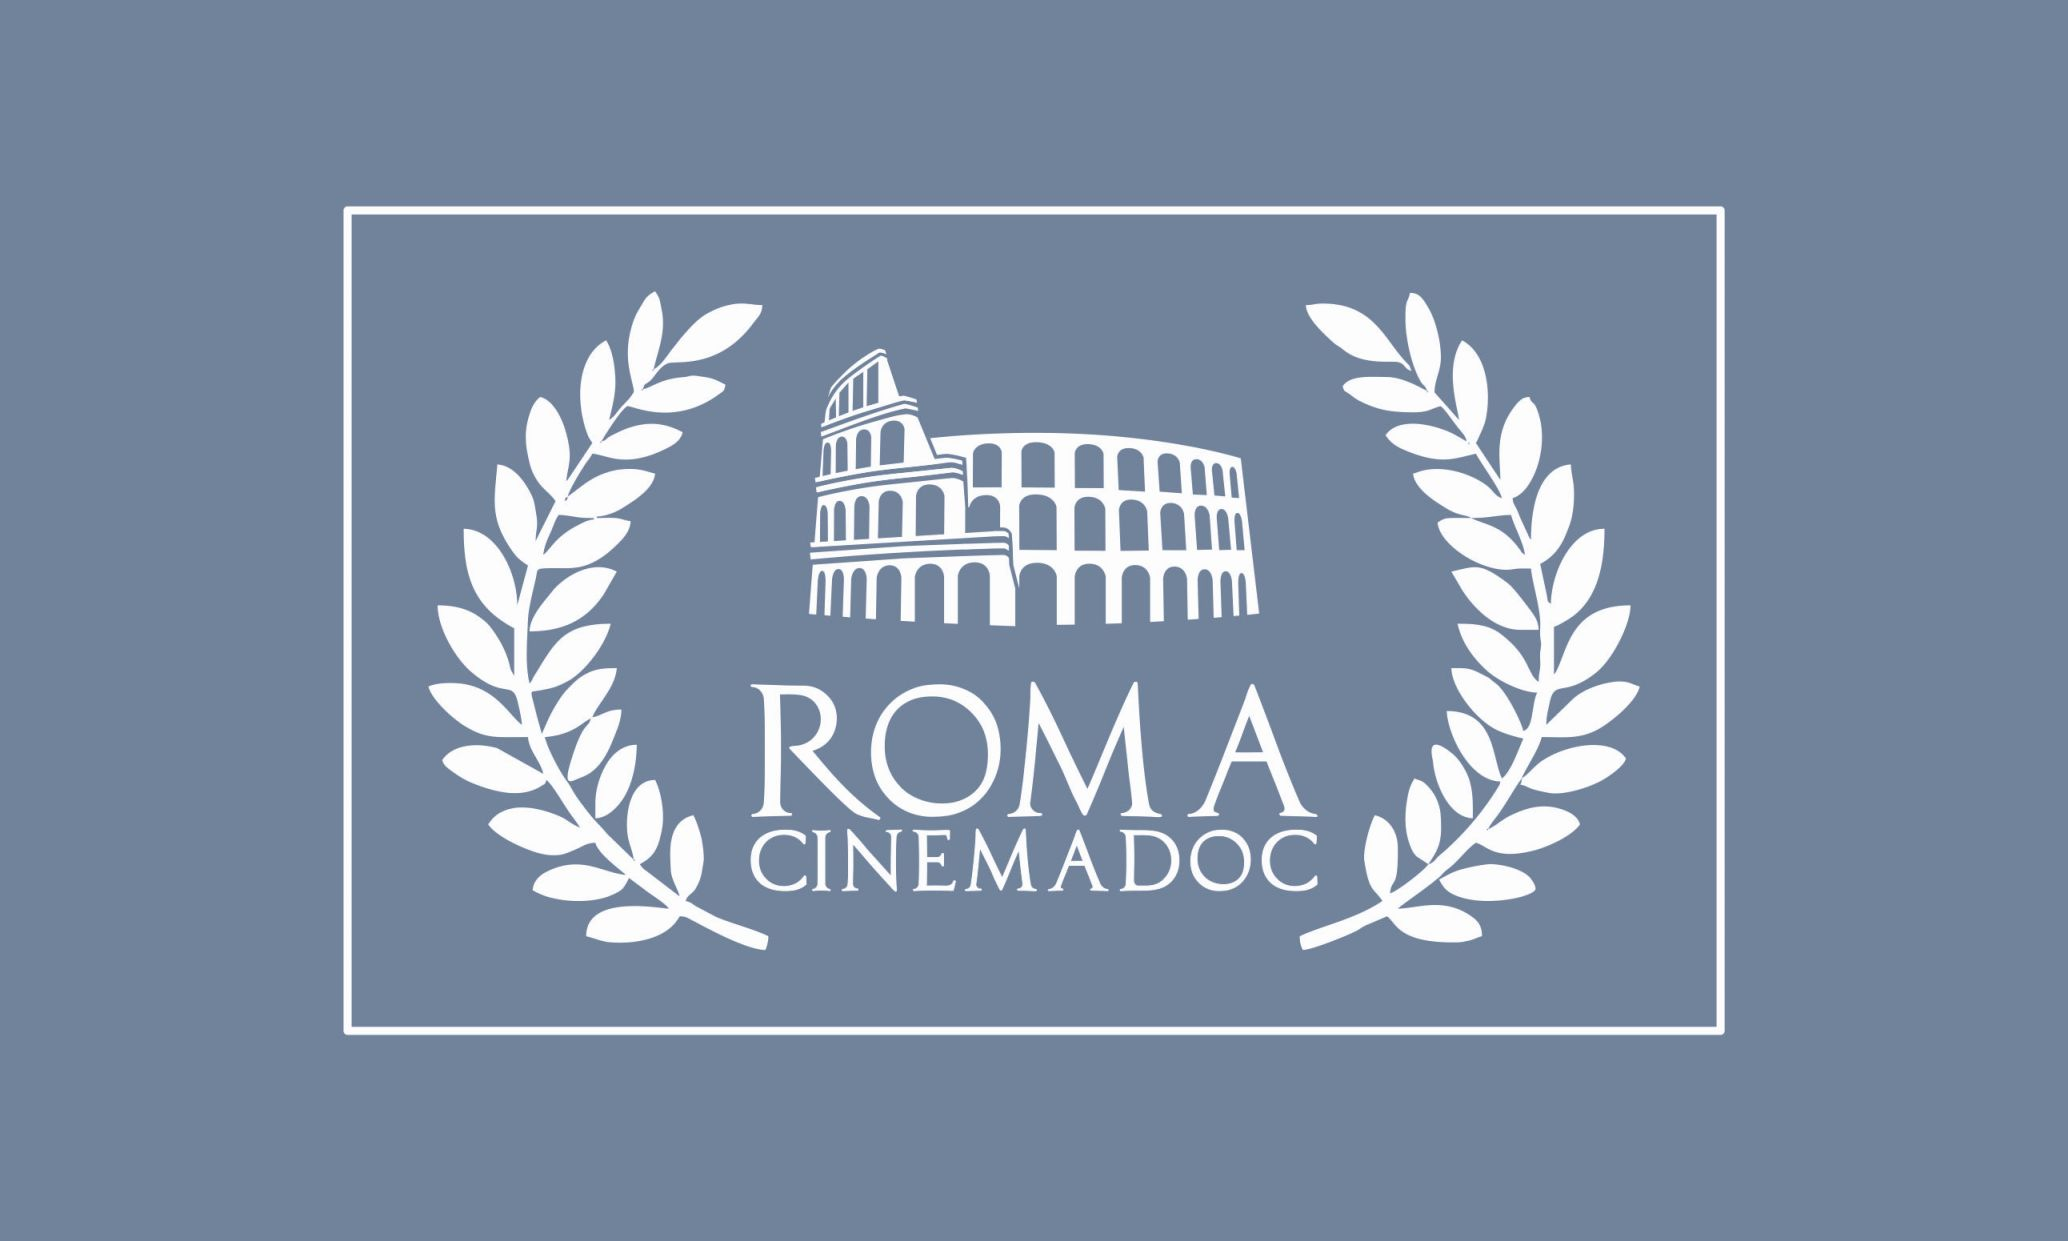 Roma CinemaDOC logo (courtesy of Roma CinemaDOC)